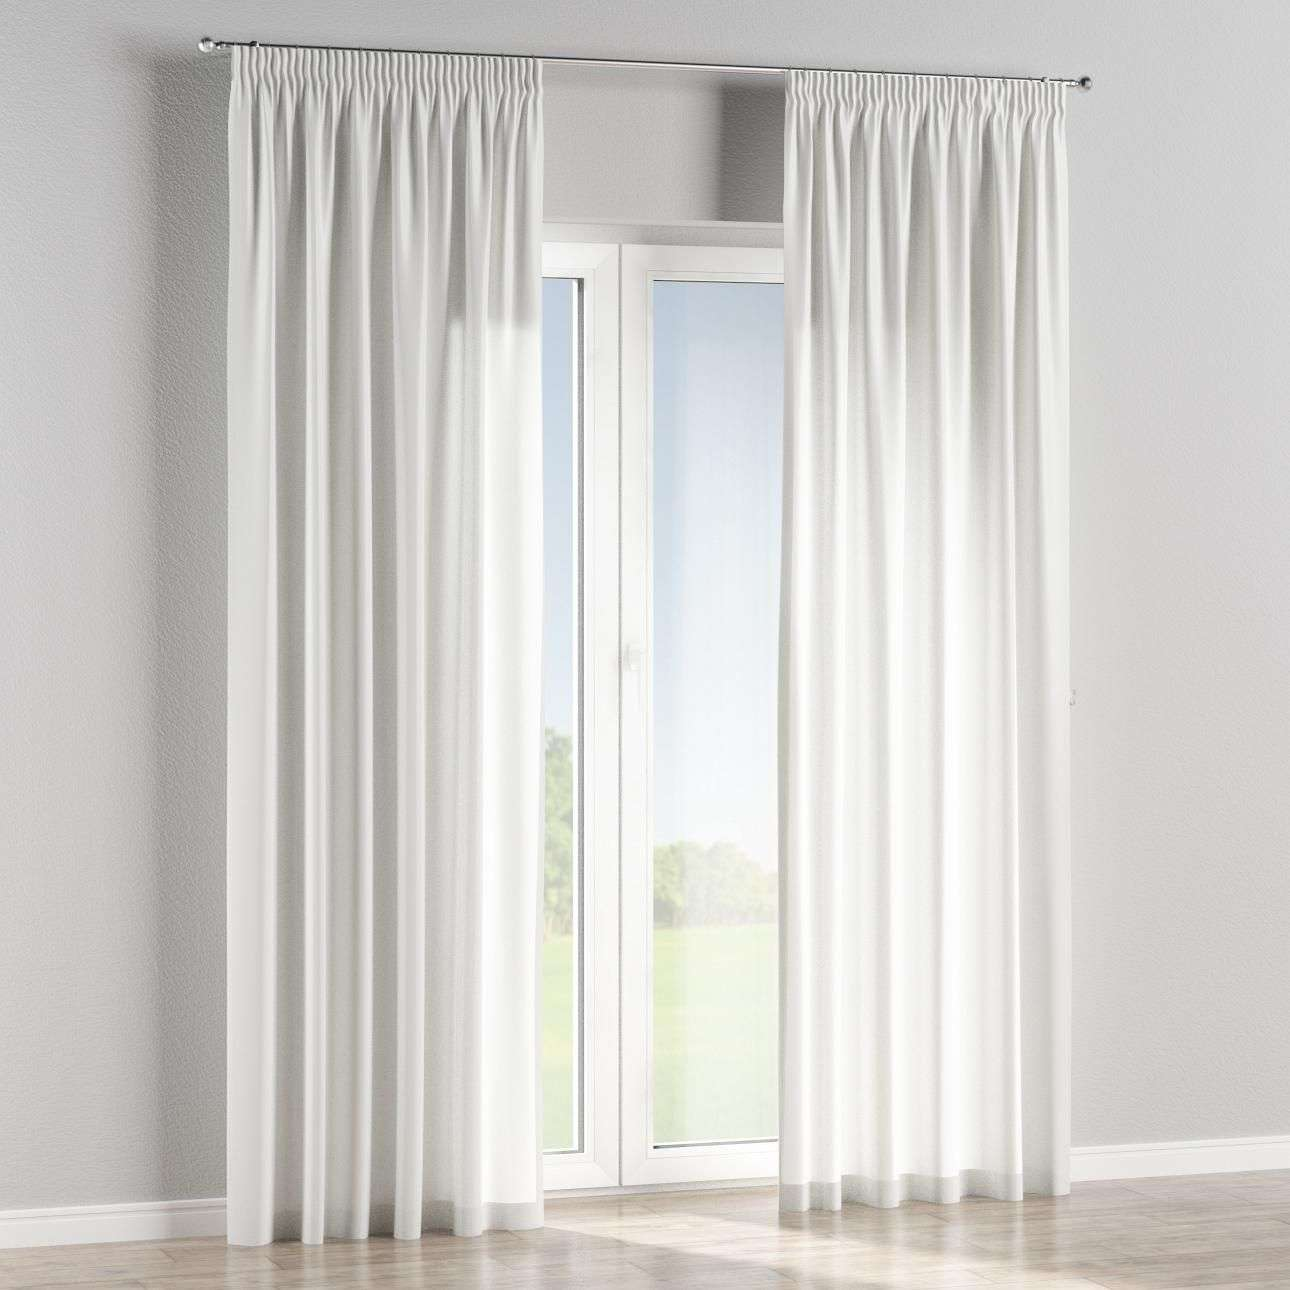 Pencil pleat lined curtains in collection Marina, fabric: 140-12